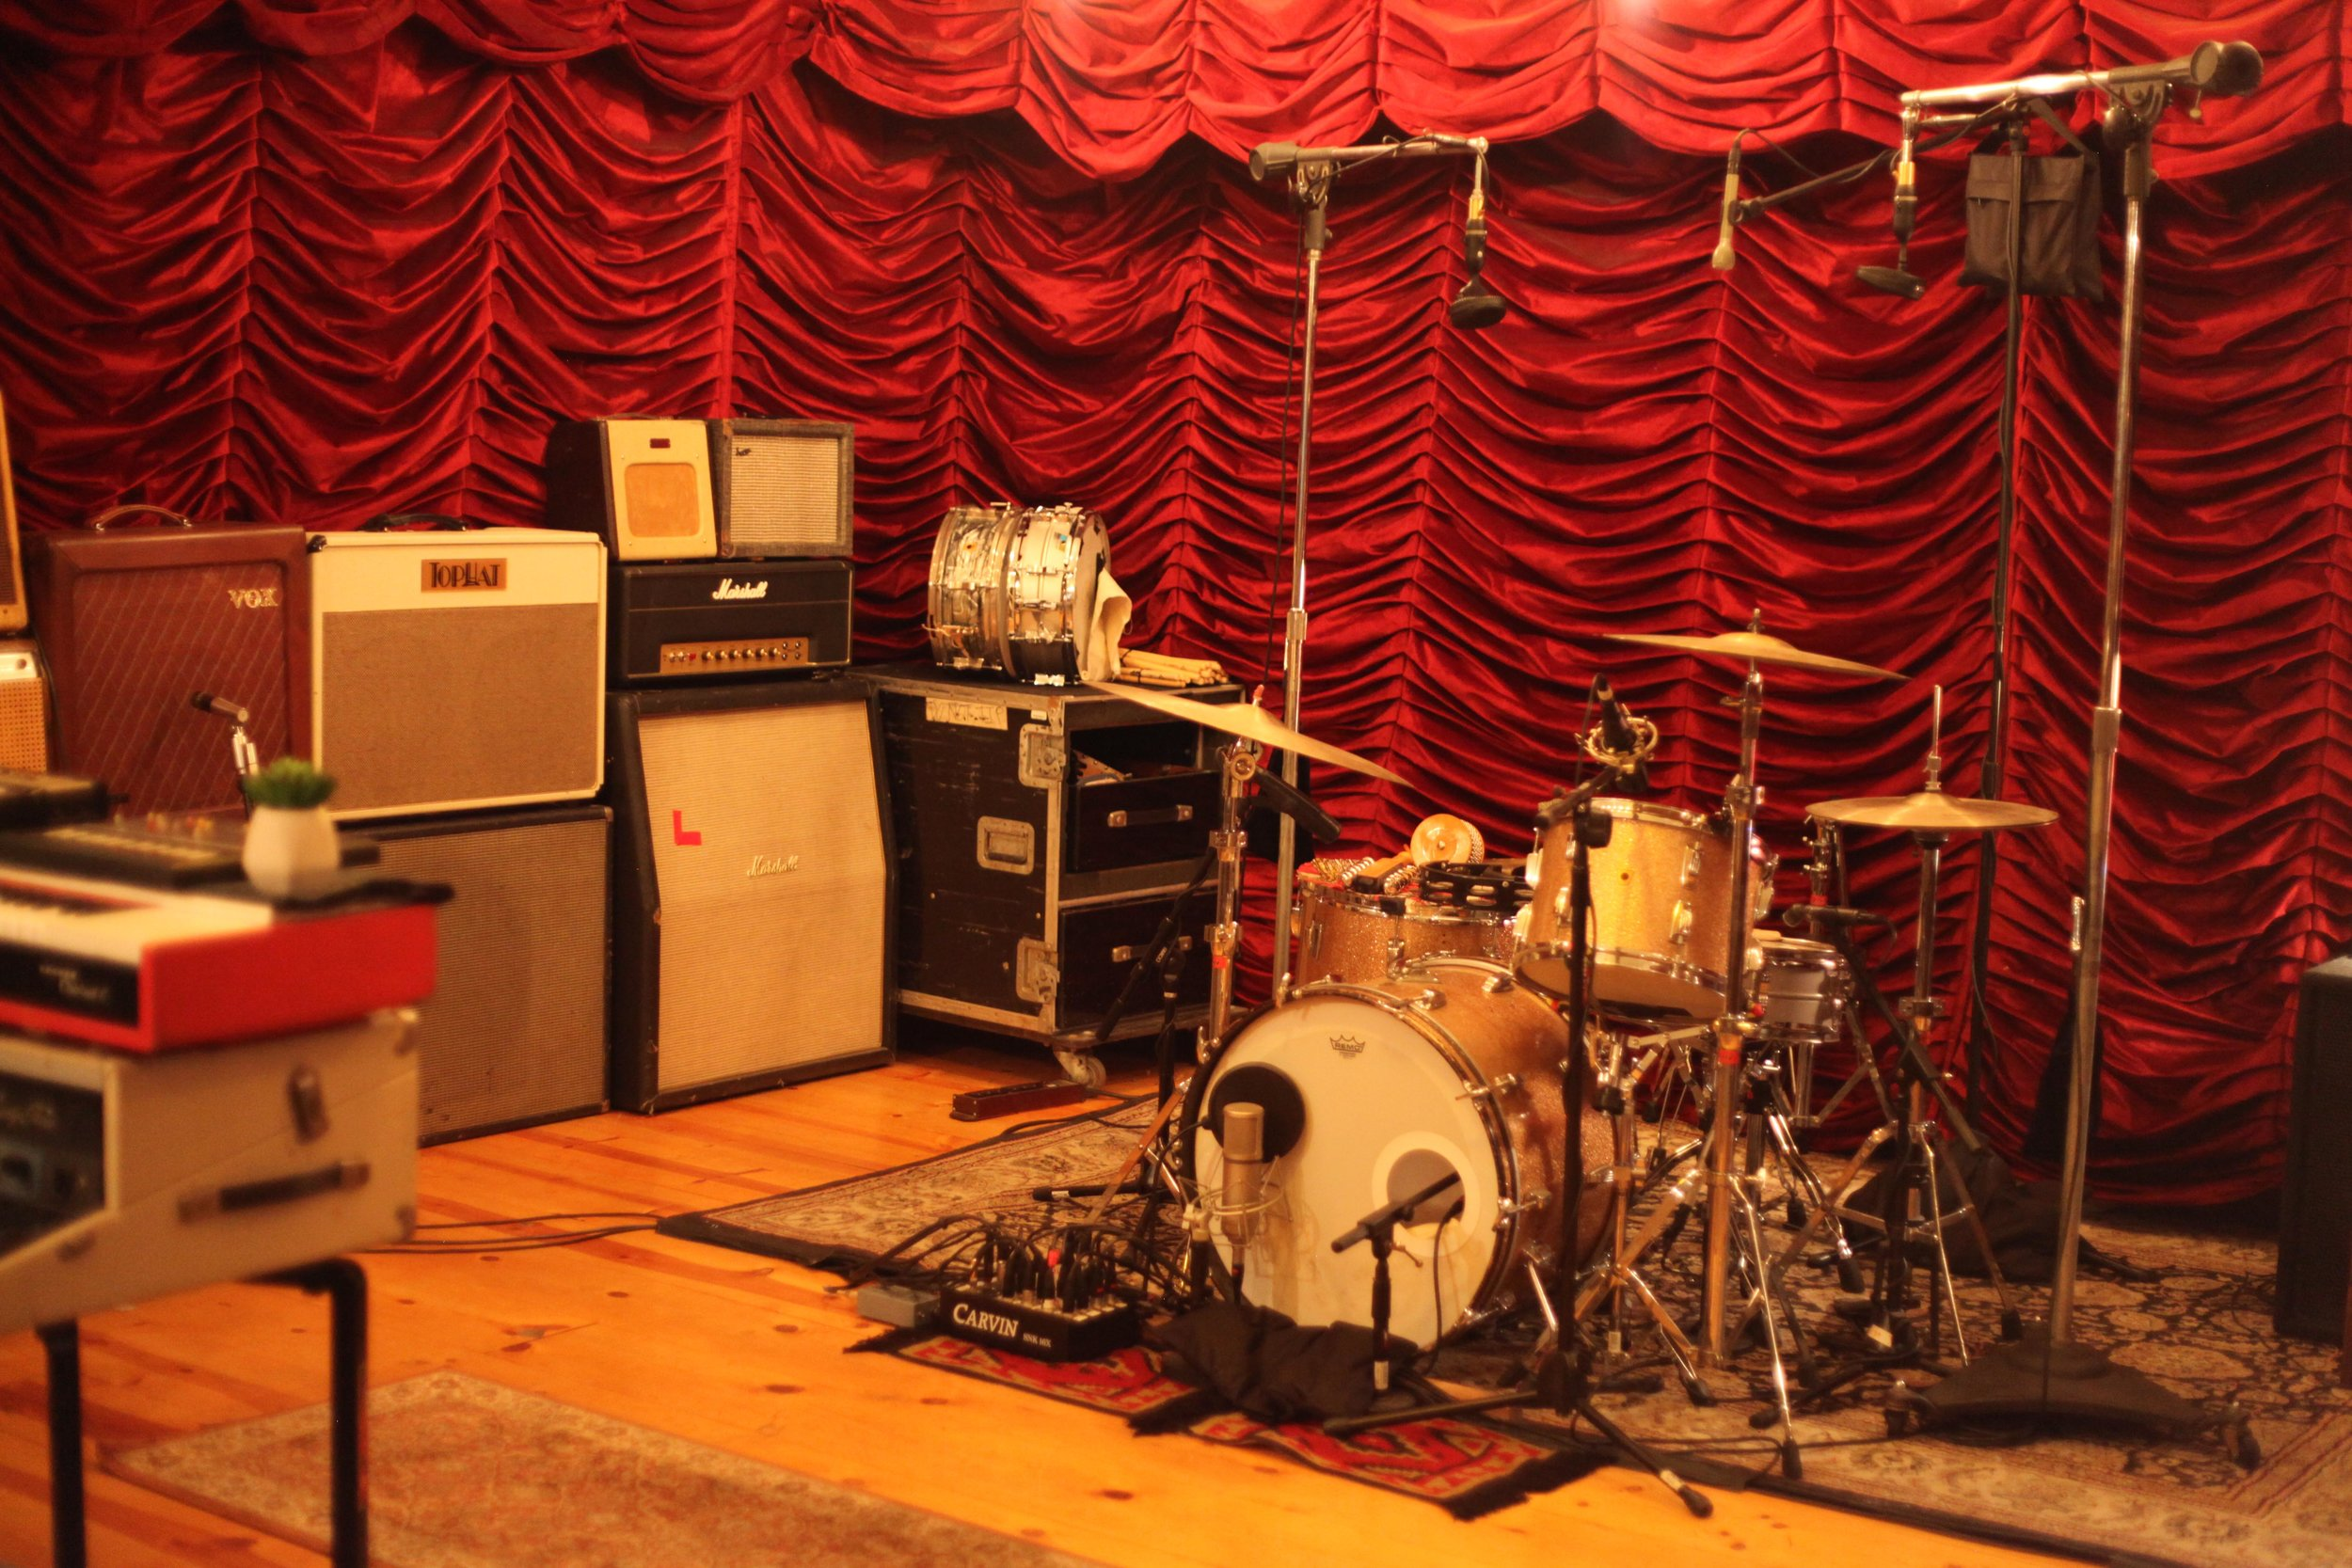 The Velveteen Laboratory - Taylor's recording studio in the heart of Los Feliz